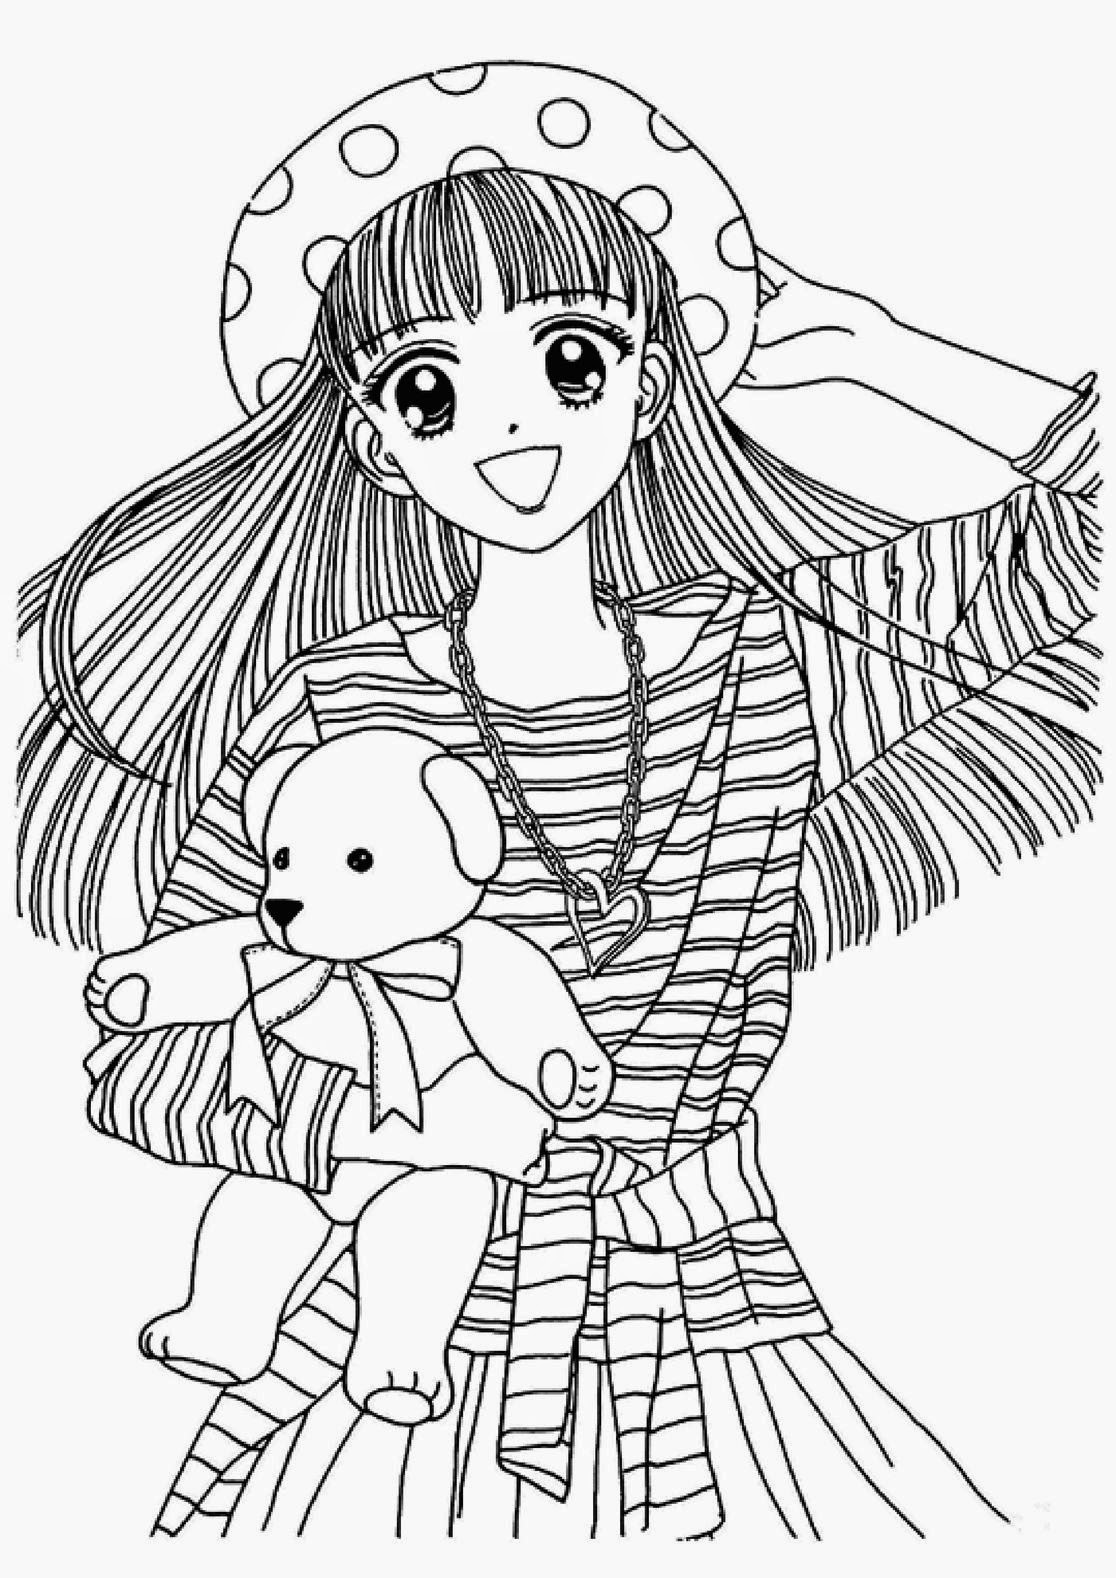 free anime coloring anime coloring pages best coloring pages for kids free anime coloring